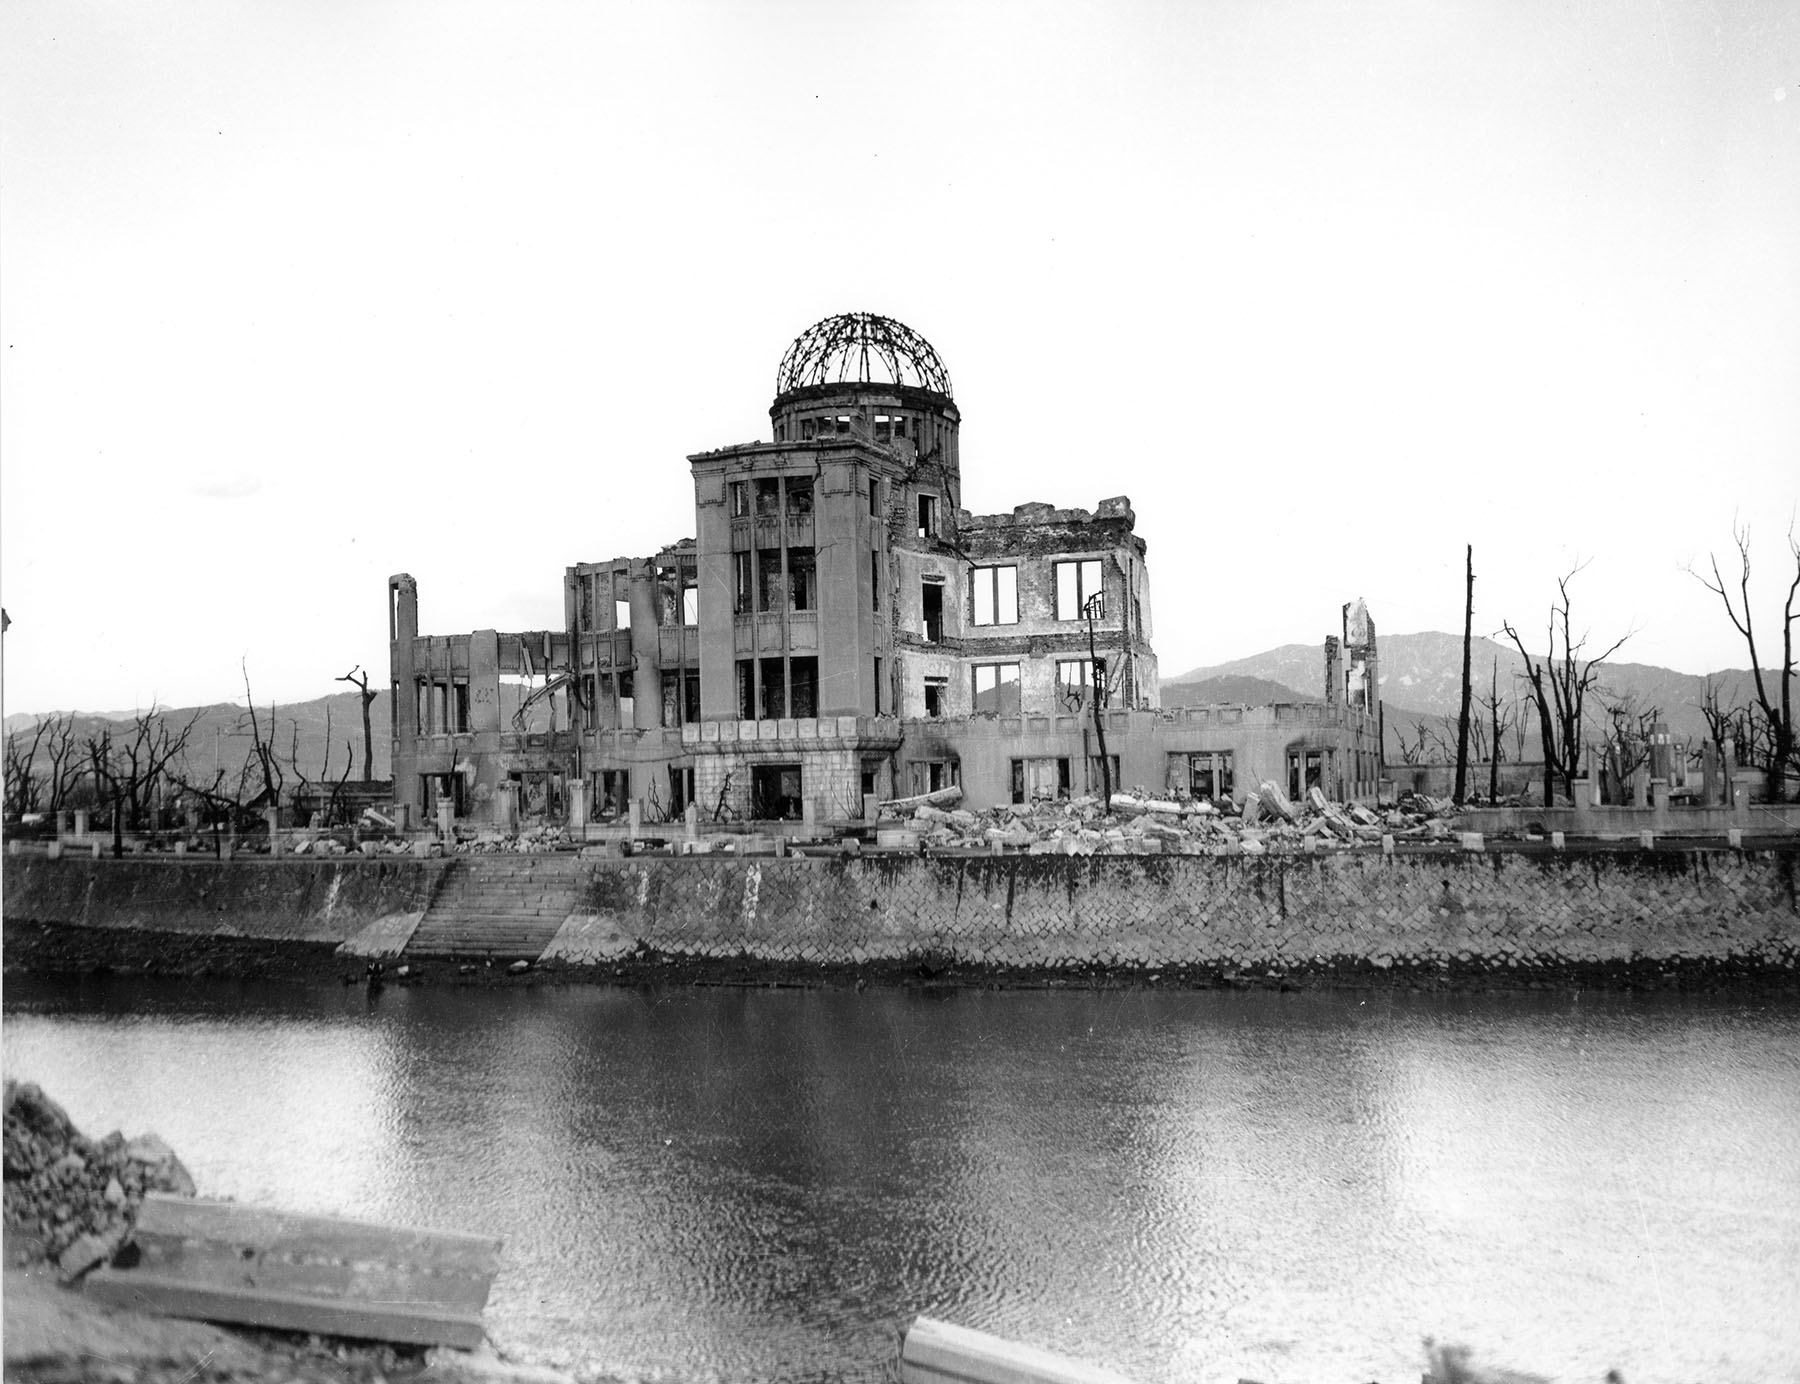 Photo by US Army. Courtesy of Hiroshima Peace Memorial Museum (HB118-B).